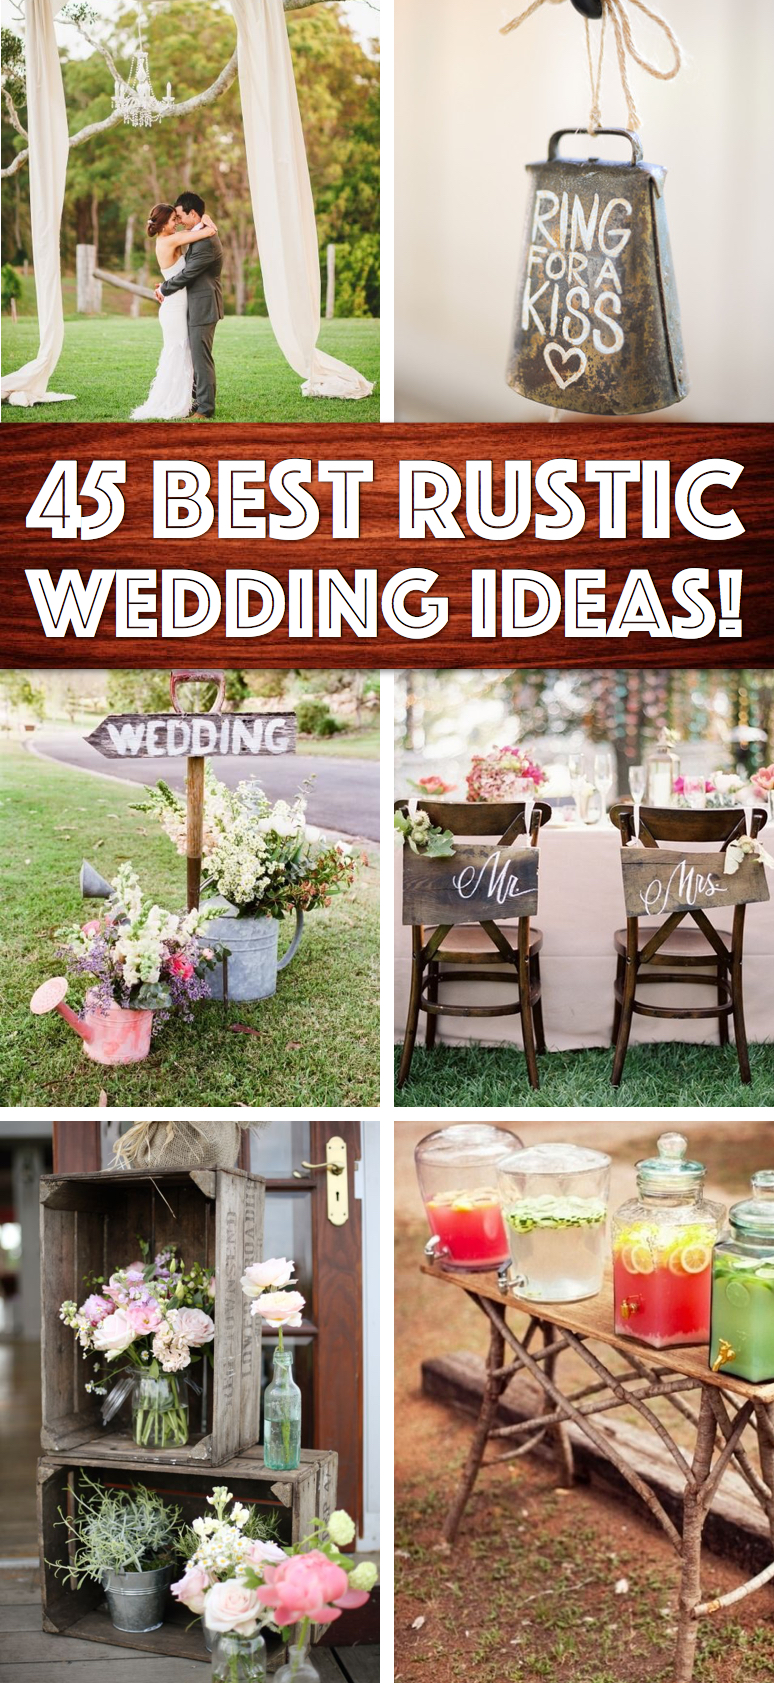 Shine on your wedding day with these breath taking rustic wedding shine on your wedding day with these breath taking rustic wedding ideas junglespirit Images